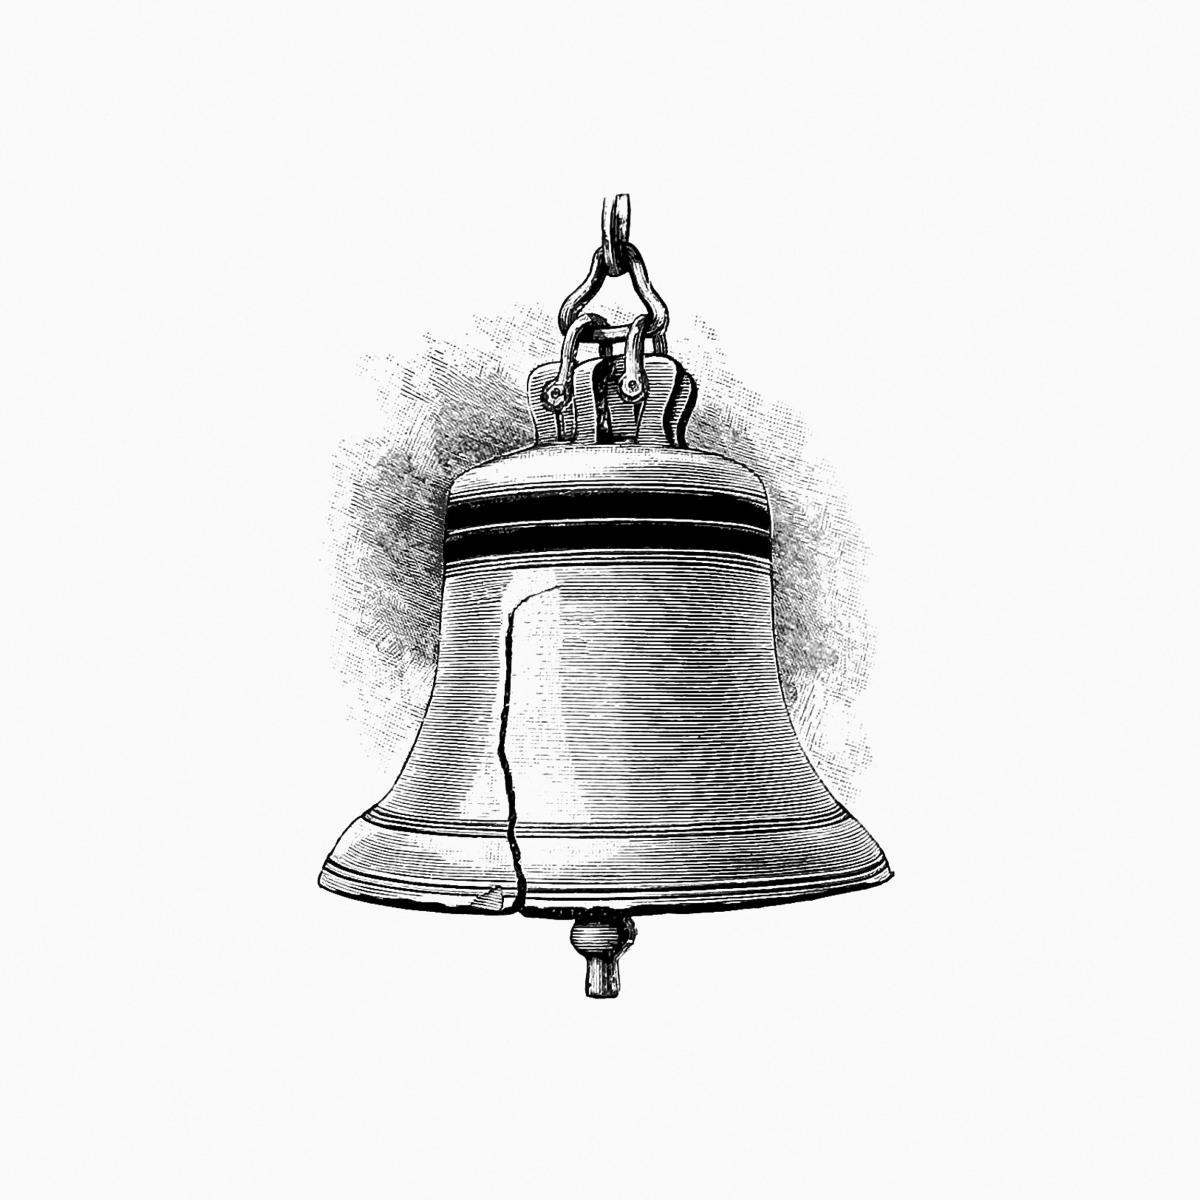 Liberty Bell from Elements of Geography published by Ginn & Co. (1898). Original from the British Library.  #388908